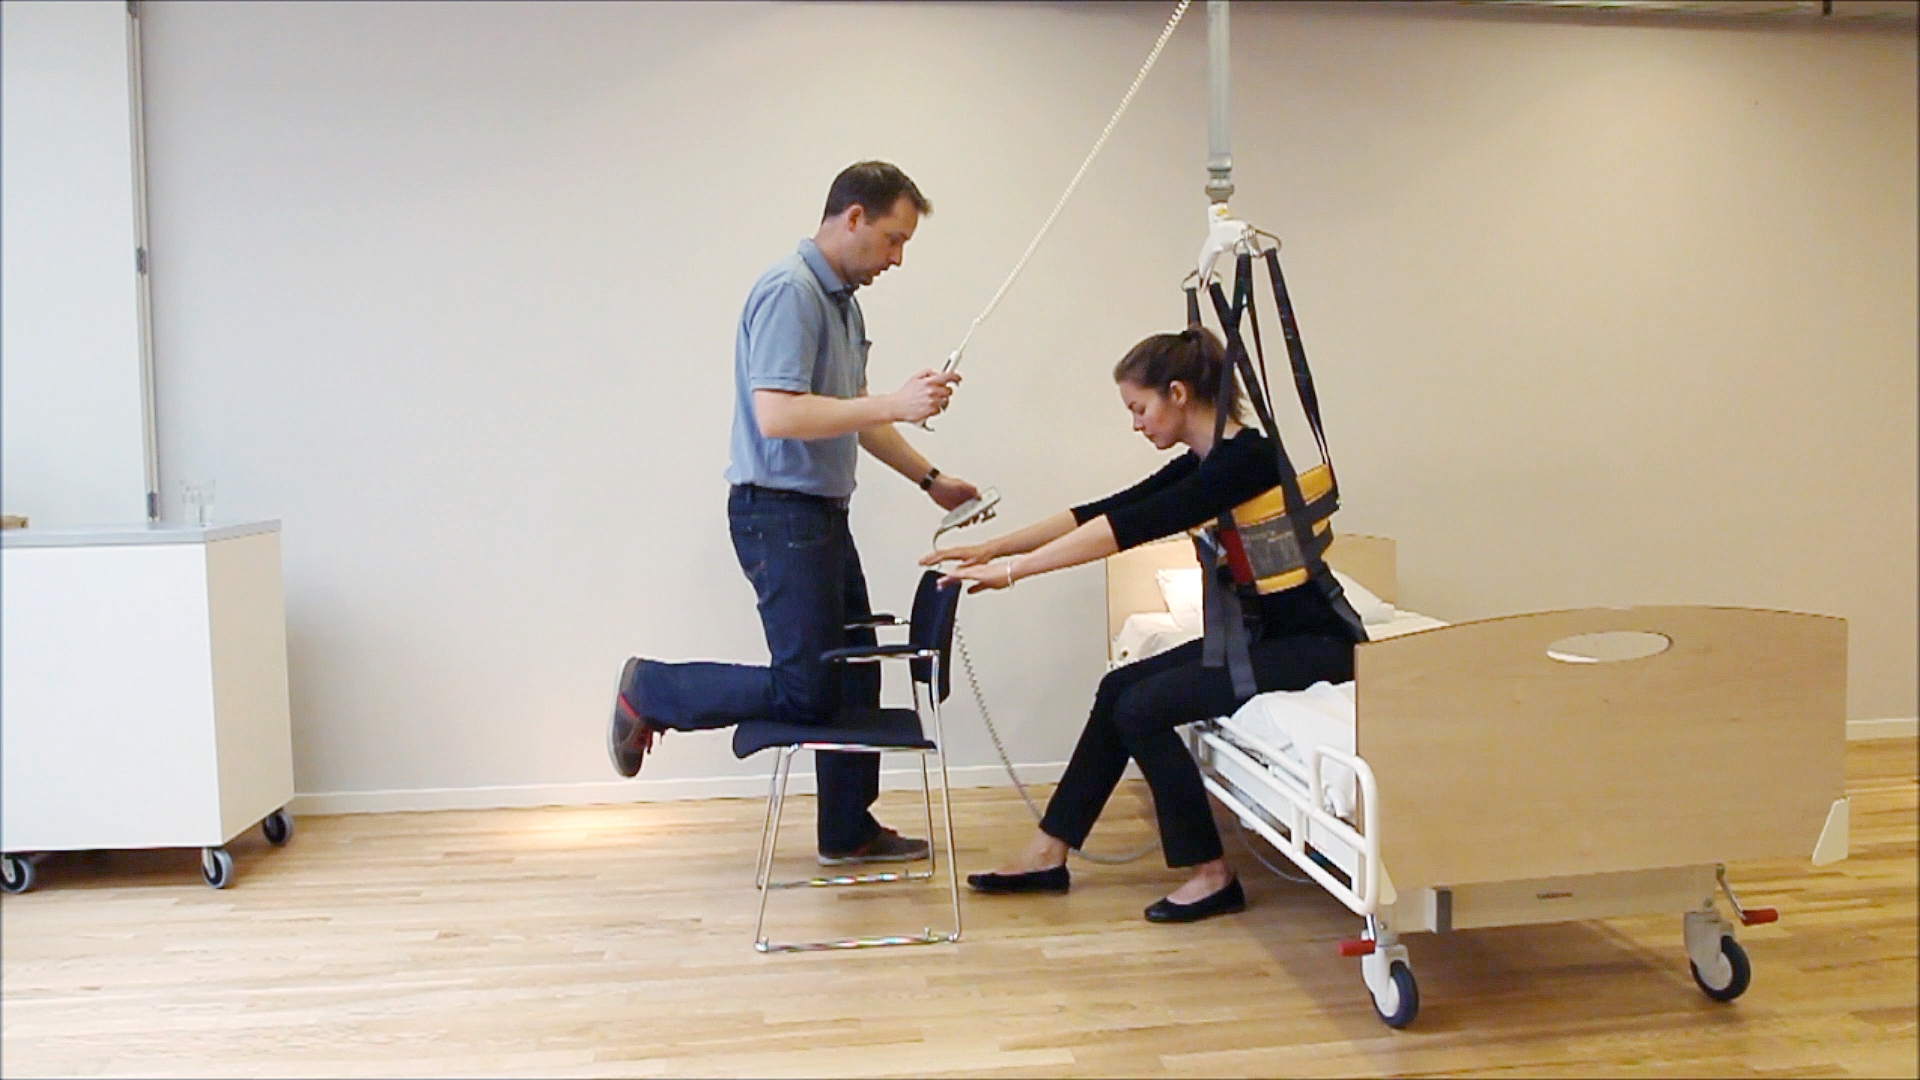 Rehabilitation and mobilization exercises - Sit to stand